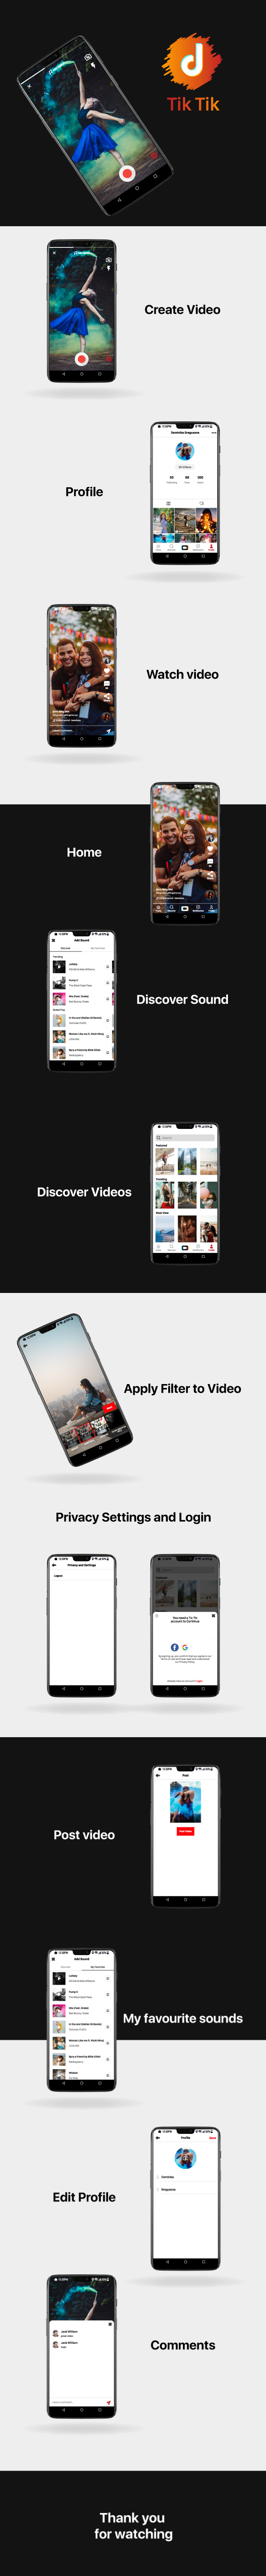 TicTic -  Android media app for creating and sharing short videos v2.5 - 5